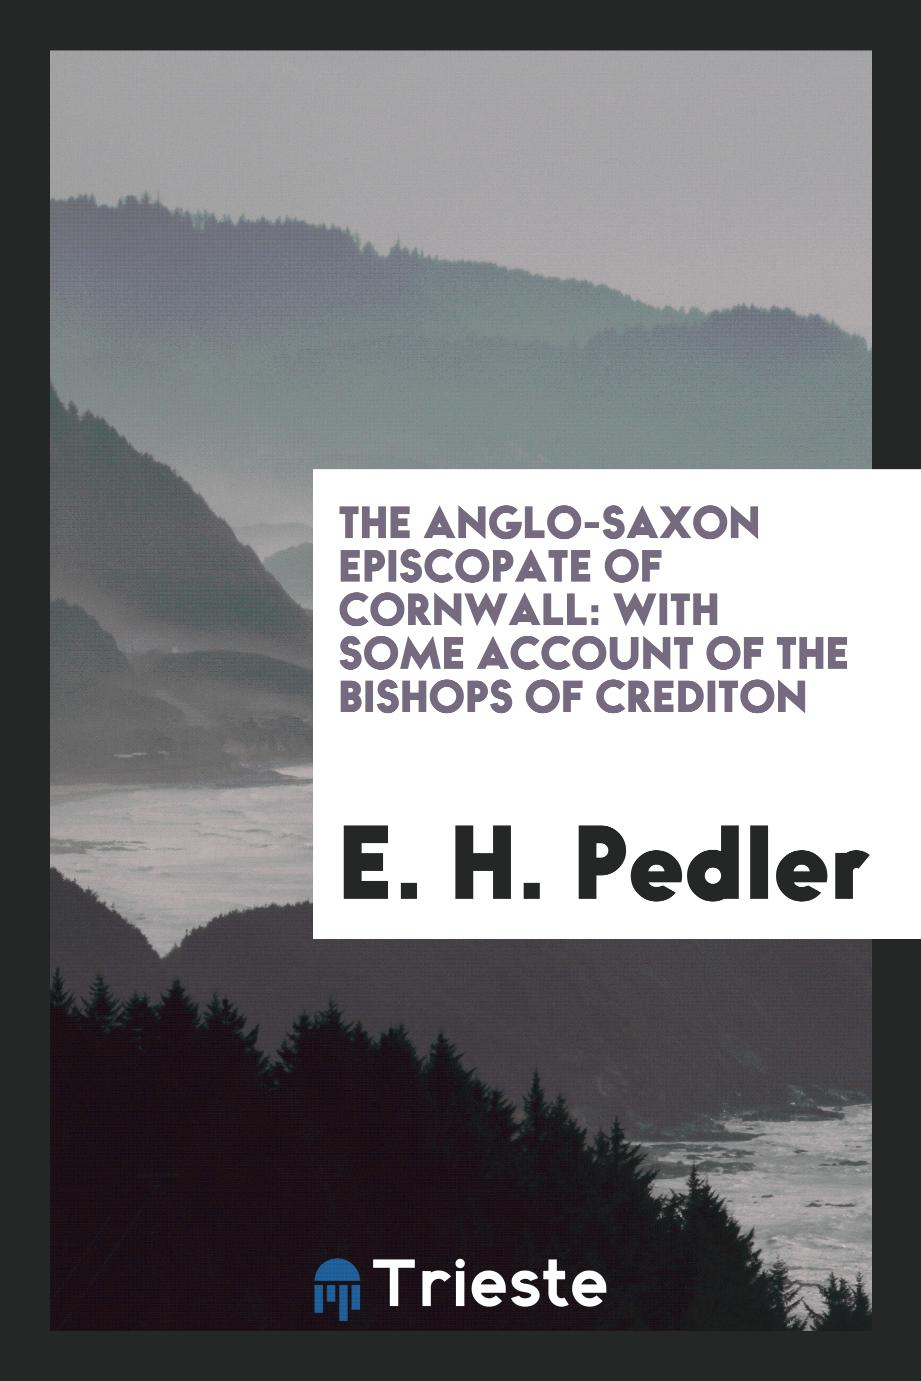 The Anglo-Saxon Episcopate of Cornwall: With Some Account of the Bishops of Crediton